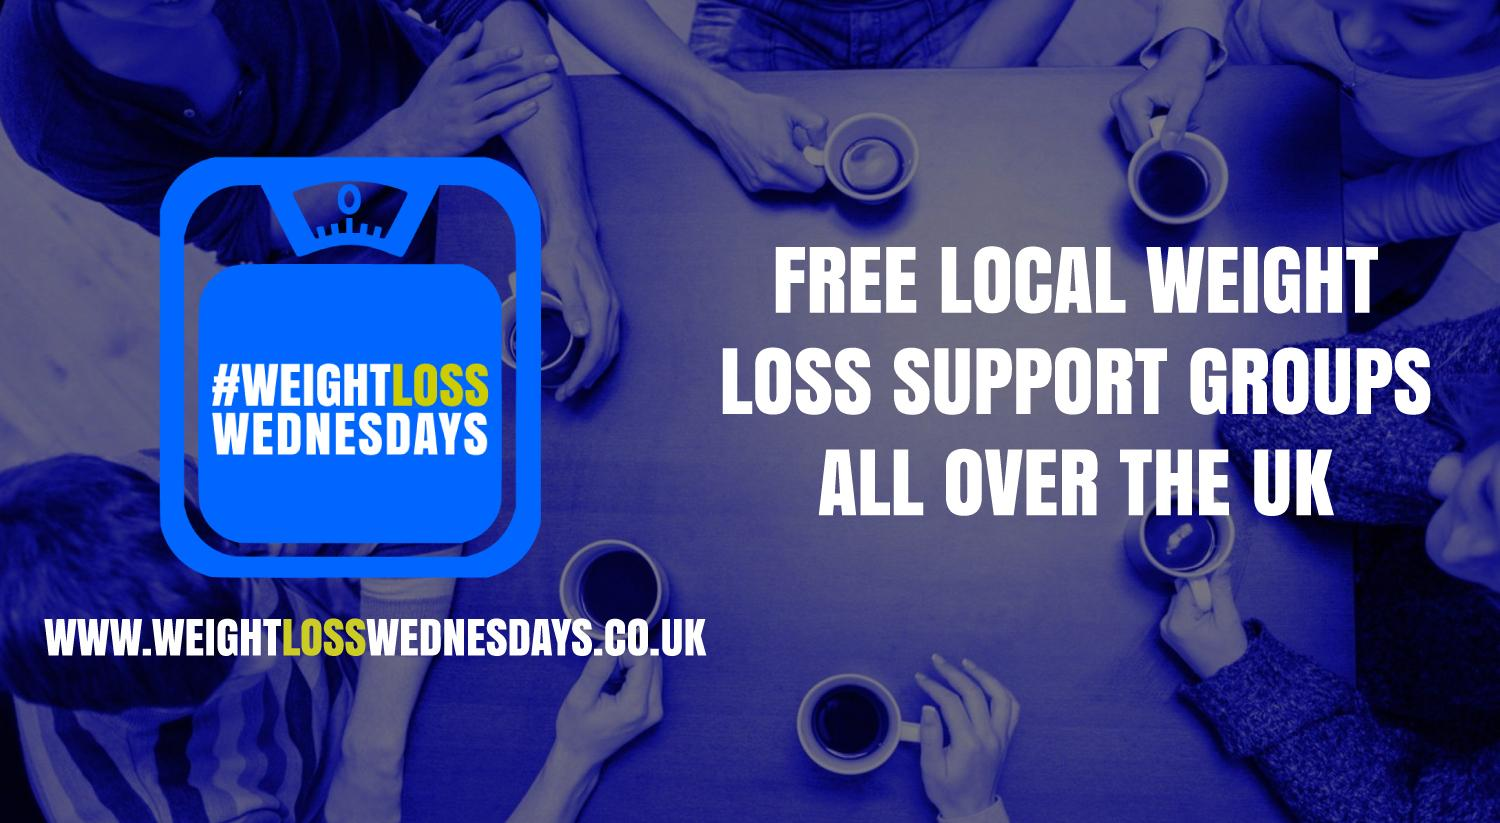 WEIGHT LOSS WEDNESDAYS! Free weekly support group in Wednesfield